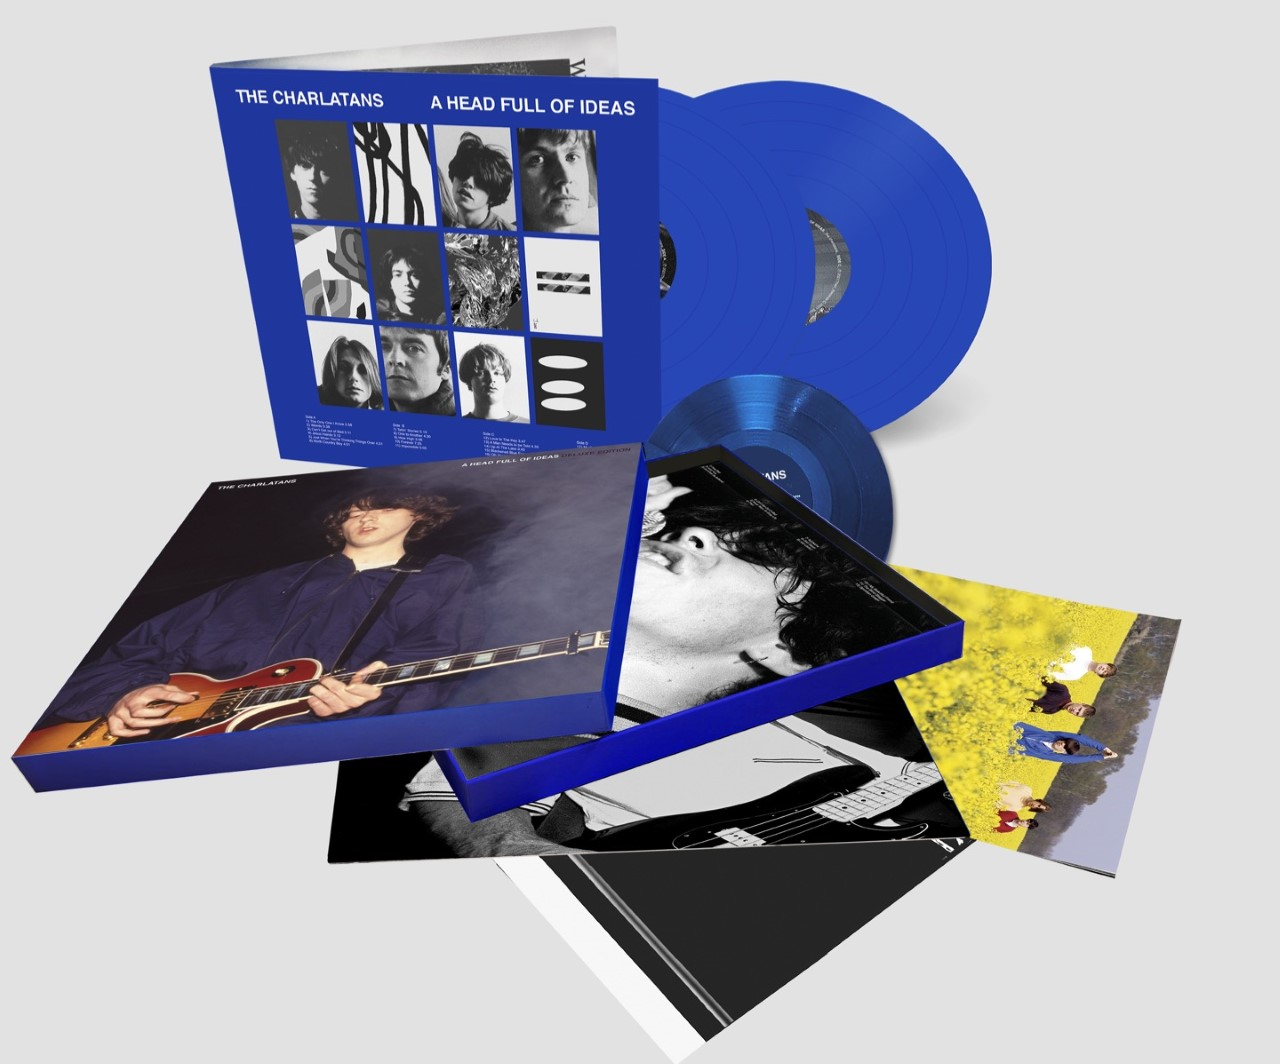 The Charlatans - A Head Full Of Ideas 30th Anniversary Vinyl Boxset, SIGNED Exclusive Poster, 12 Page Fan Booklet, Limited Transparent Blue Vinyl